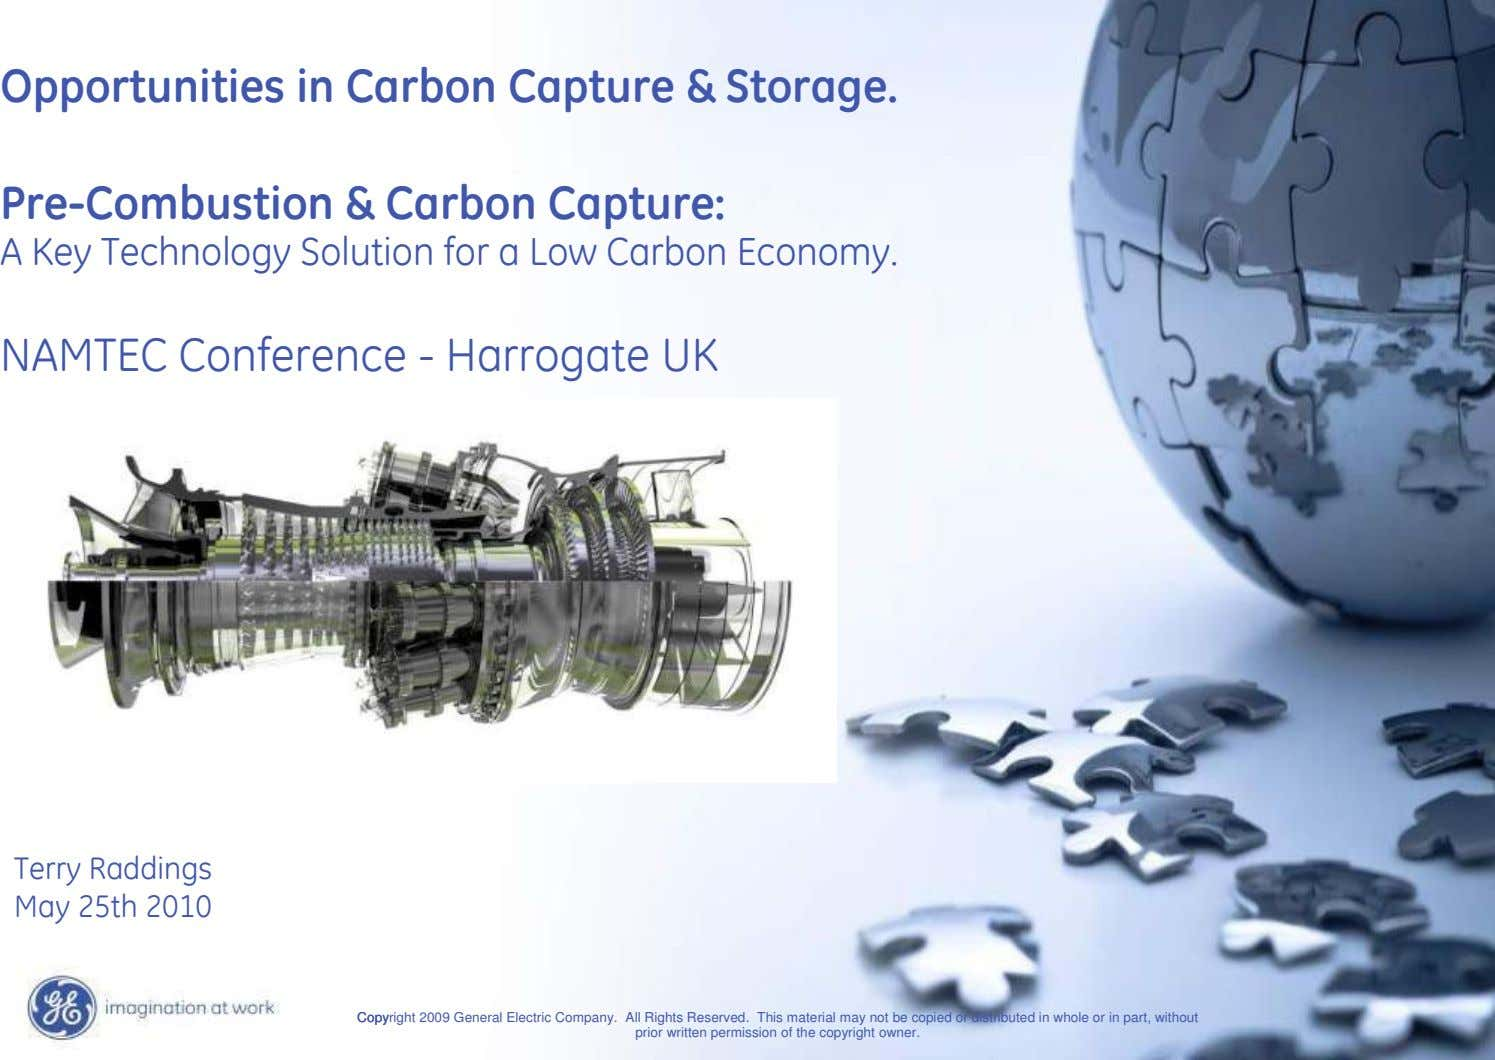 Opportunities in Carbon Capture & Storage. Pre-Combustion & Carbon Capture: A Key Technology Solution for a